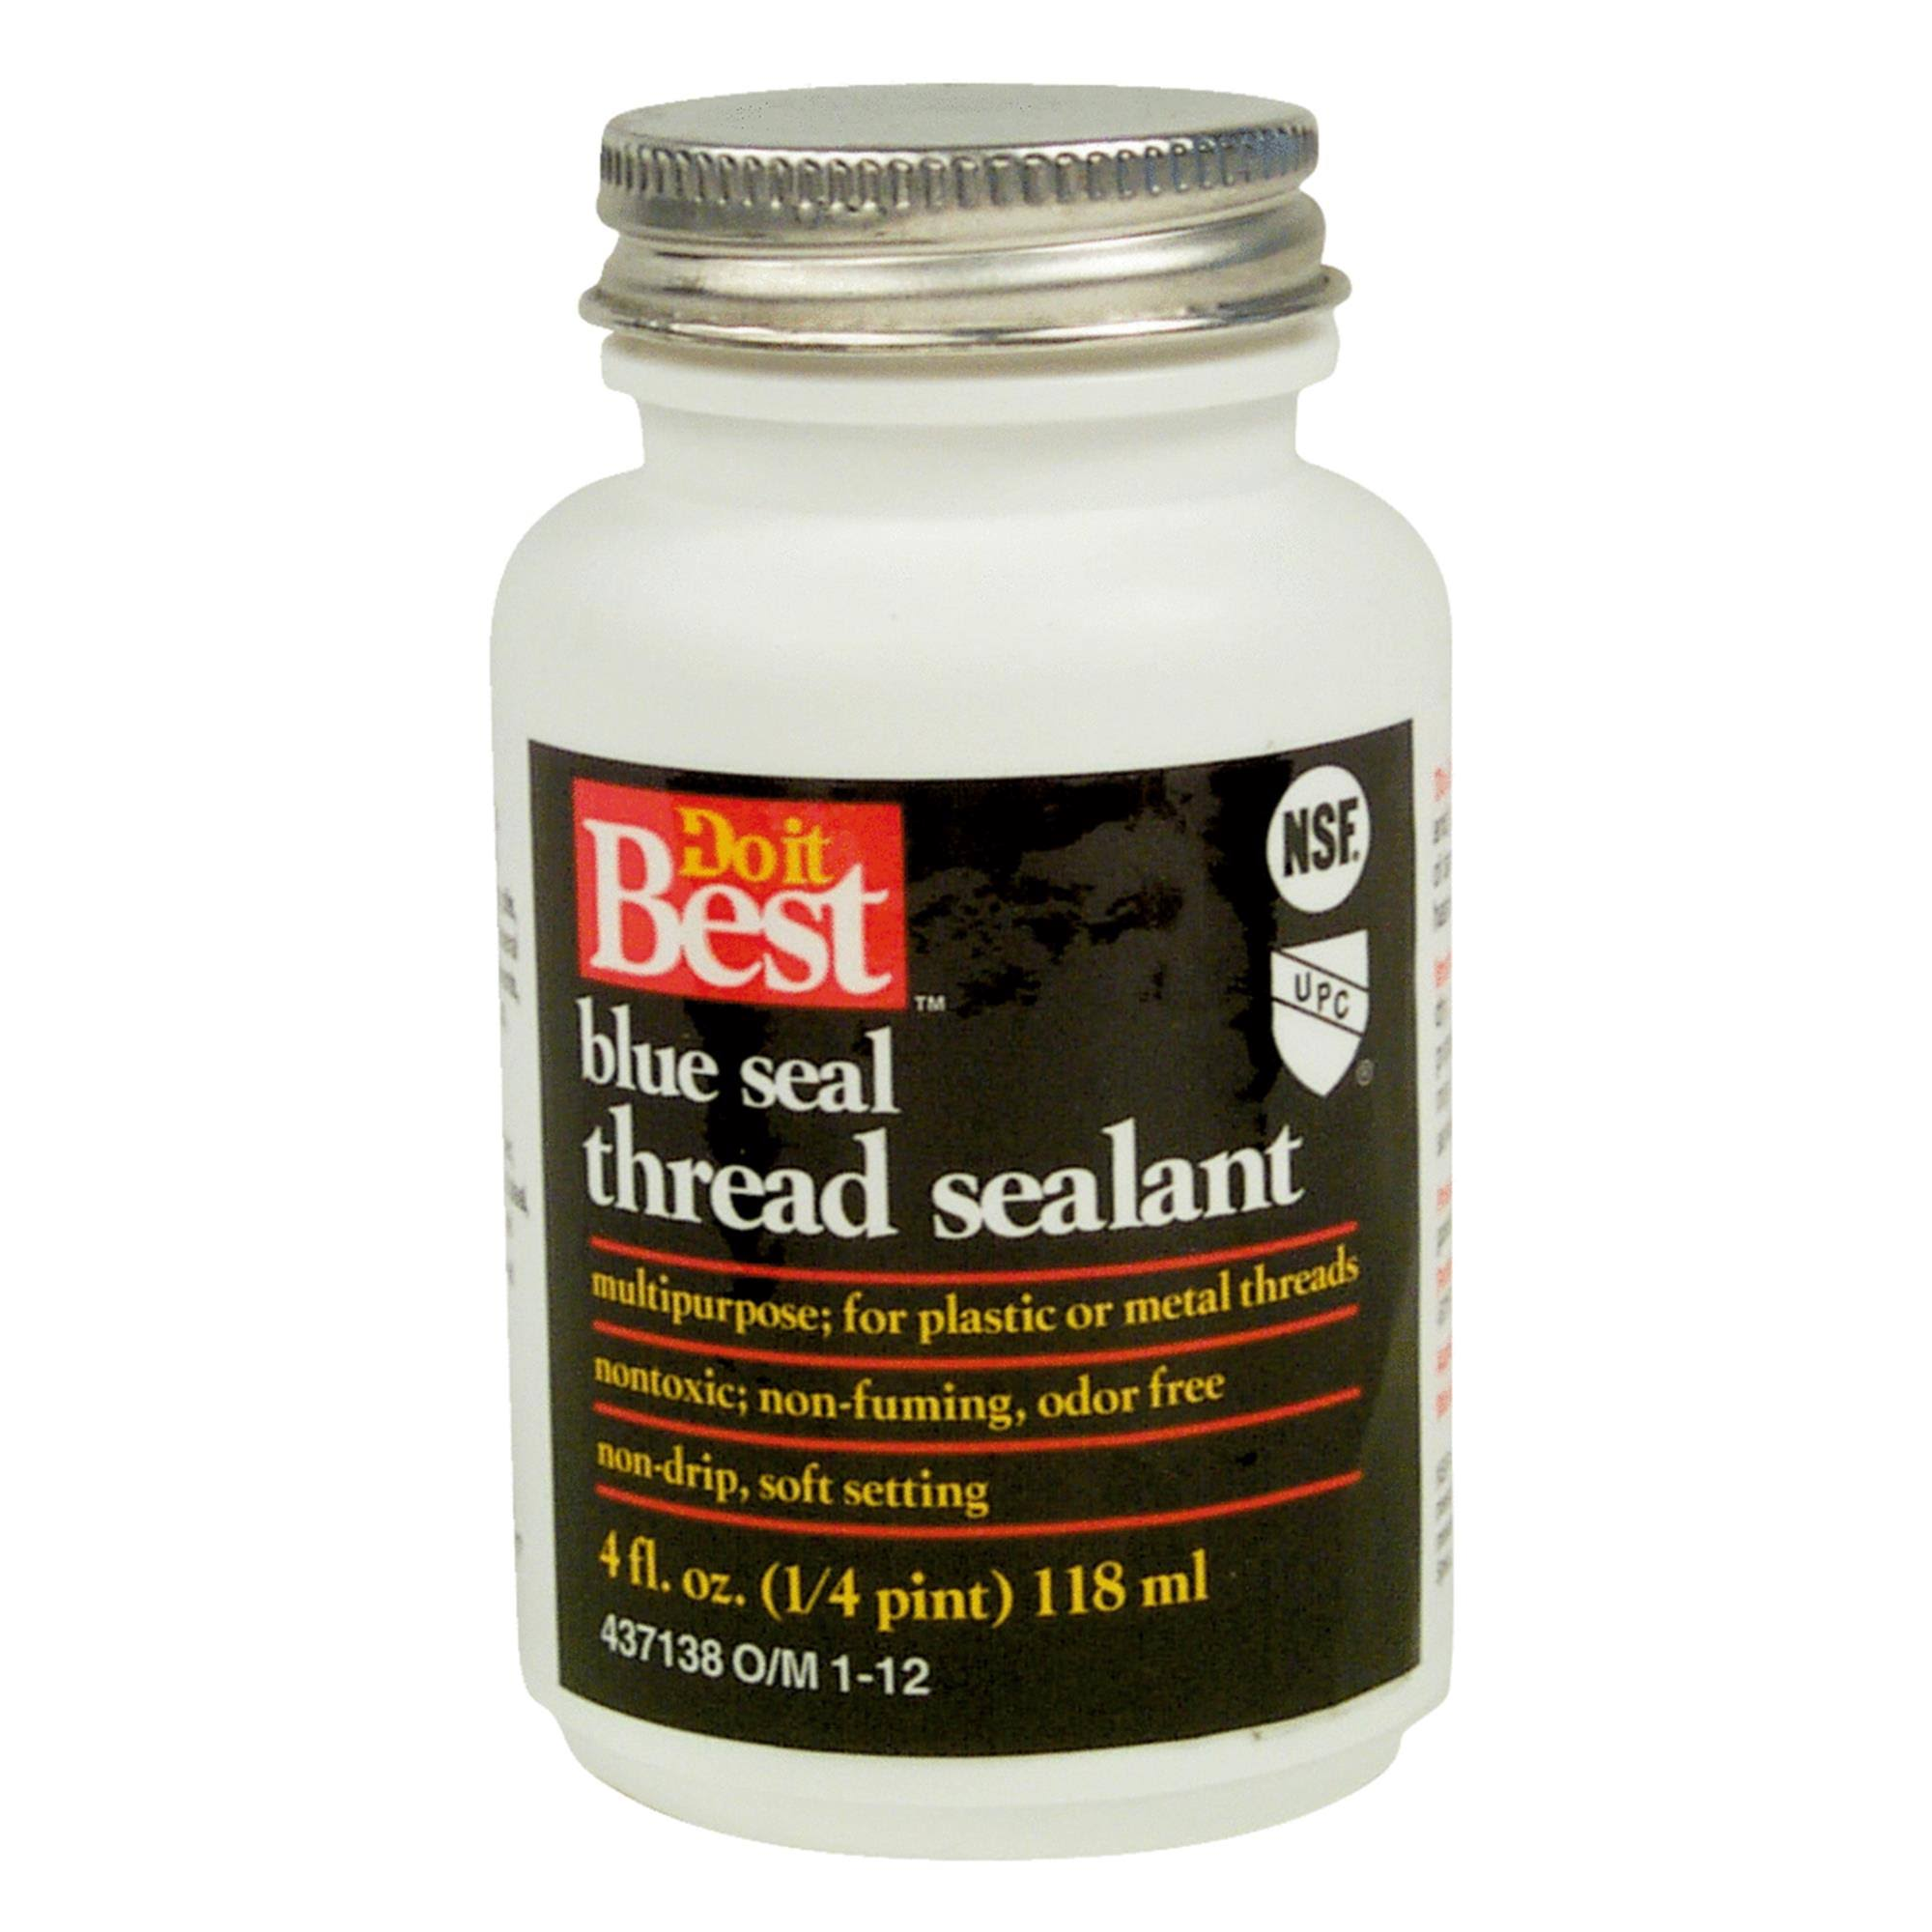 William H Harvey 025301 Do It Best Blue Seal Thread Sealant